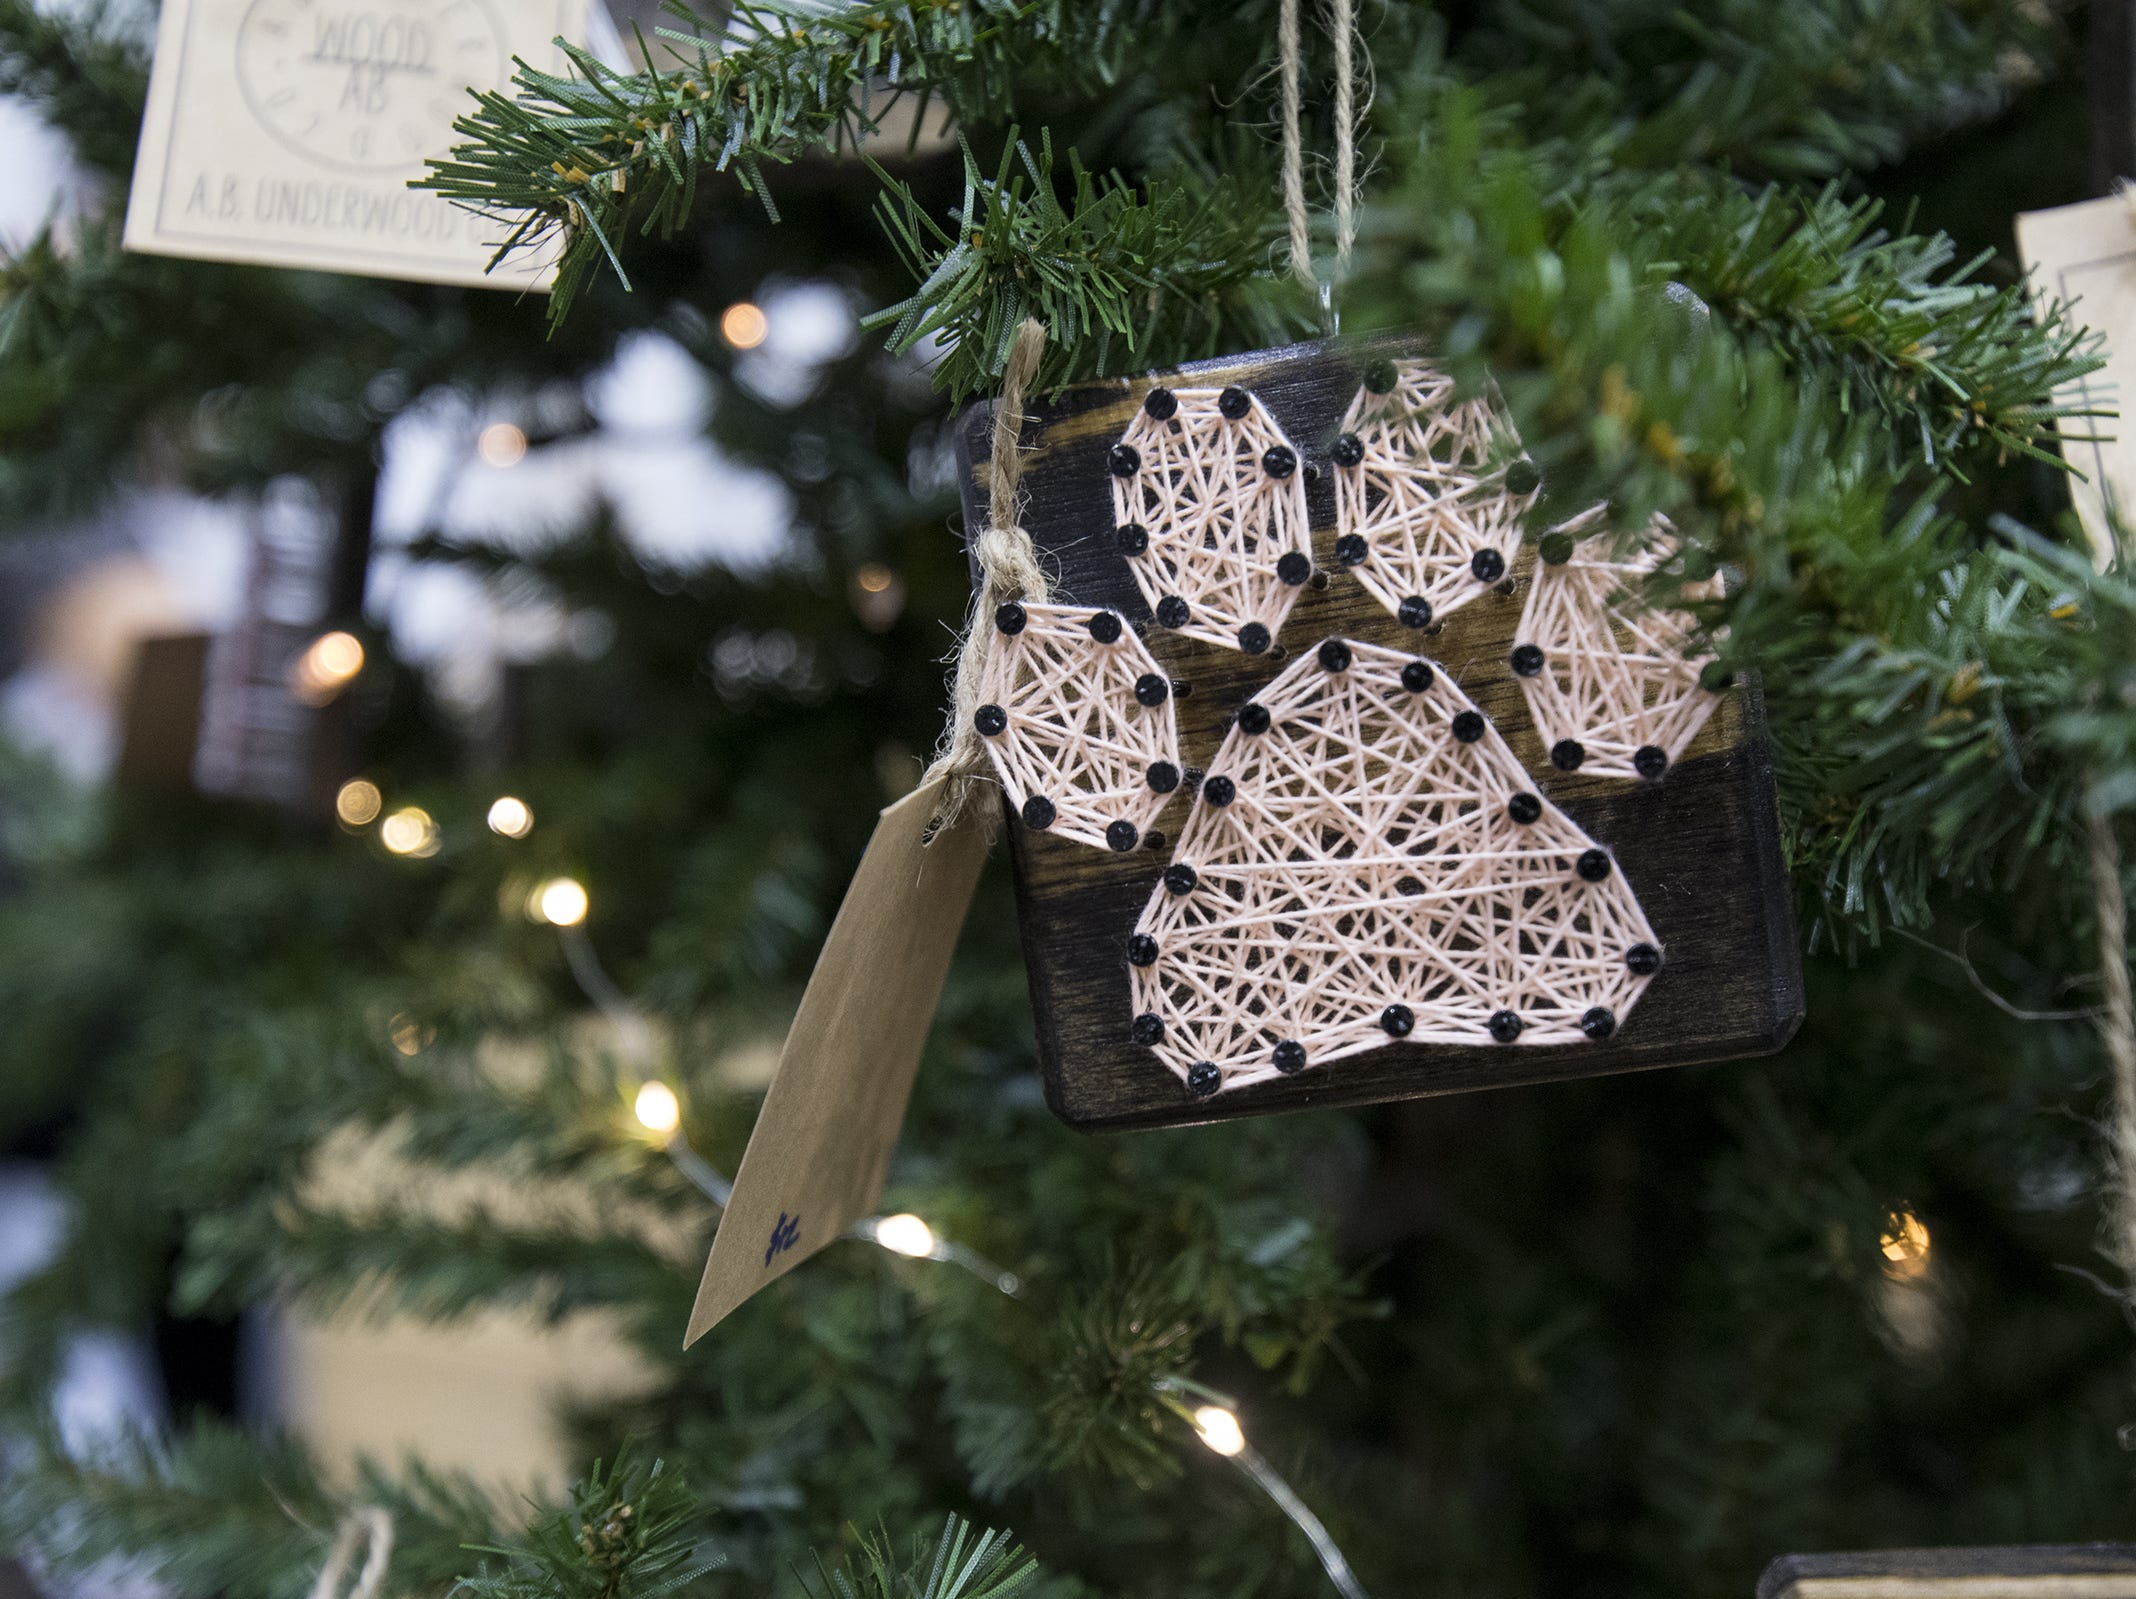 A.B. Underwood Co. sells handmade ornaments and gifts during the Greater Cincinnati Holiday Market at the Duke Energy Center Friday, November 2, 2018 in Cincinnati, Ohio.